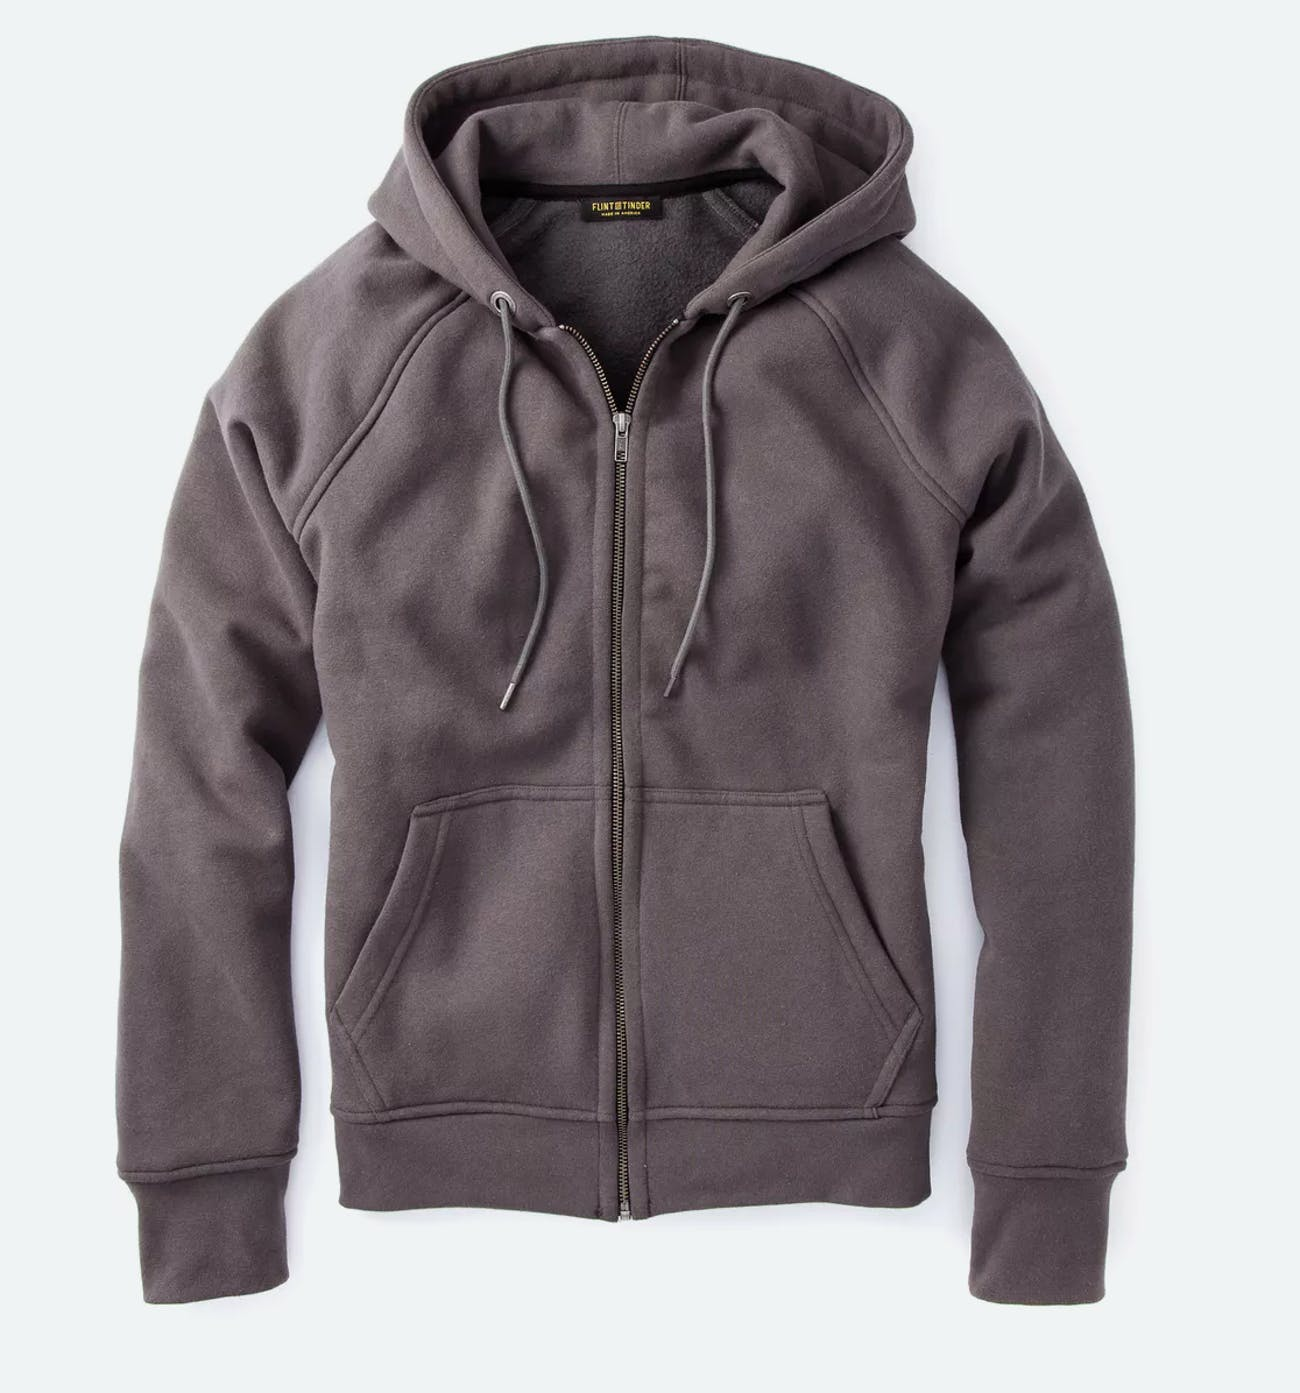 7e7ef8767696 Men s Hoodie  Our Review of the 10-Year Hoodie